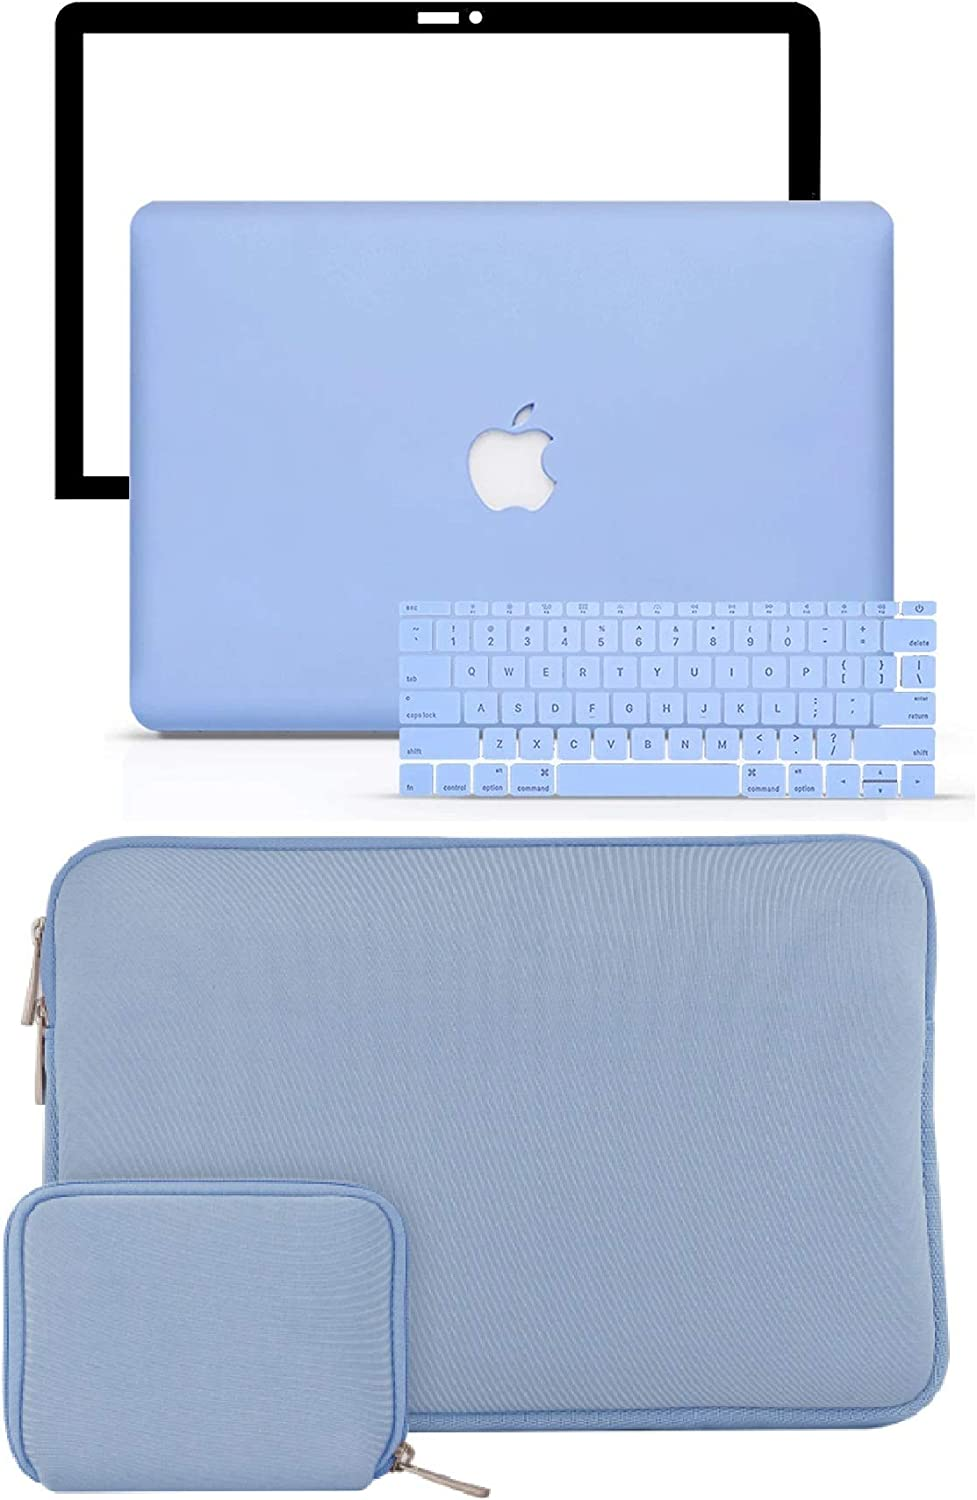 "LuvCase 5 in 1 Laptop Case for Old MacBook Pro 13"" Retina Display (2015/2014/2013/2012) A1502/A1425 Hard Shell Cover, Slim Sleeve, Pouch, Keyboard Cover & Screen Protector  (Serenity Blue)"